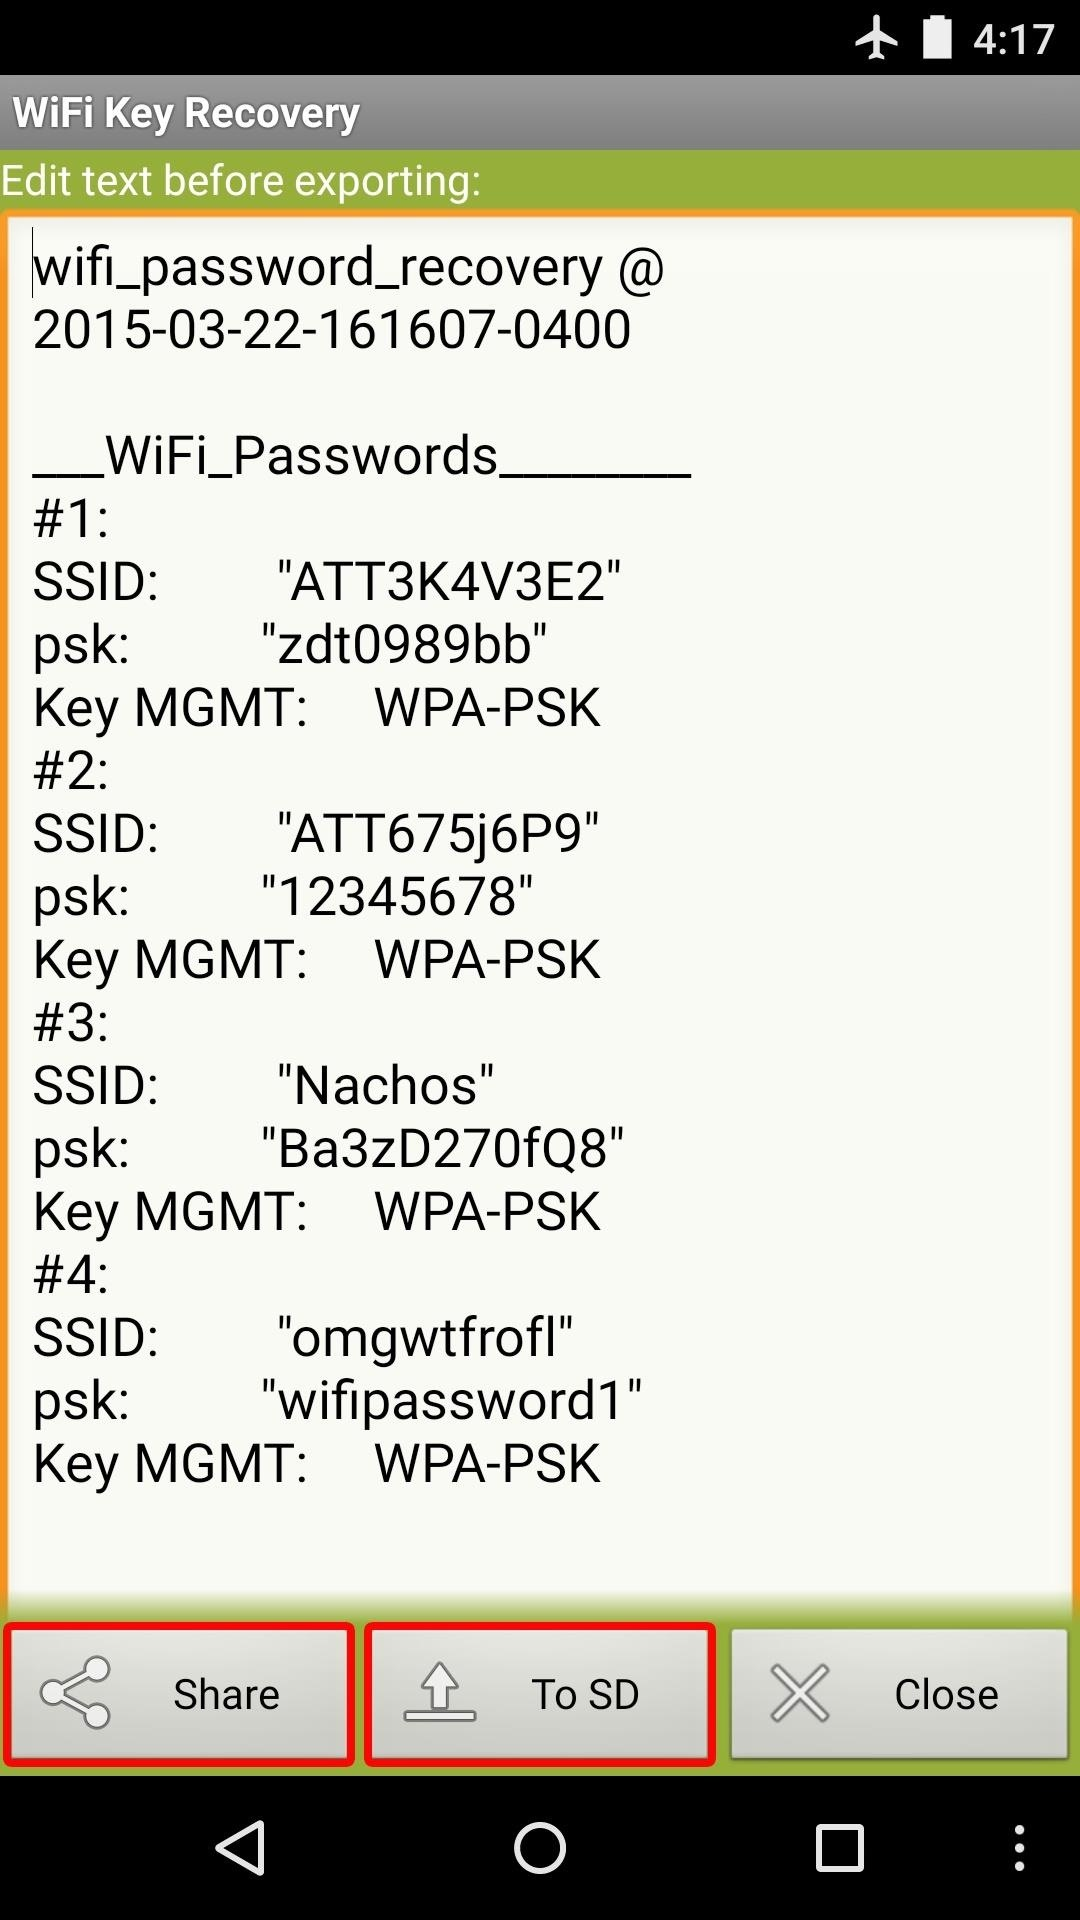 How To See Passwords for Wi-Fi Networks You've Connected